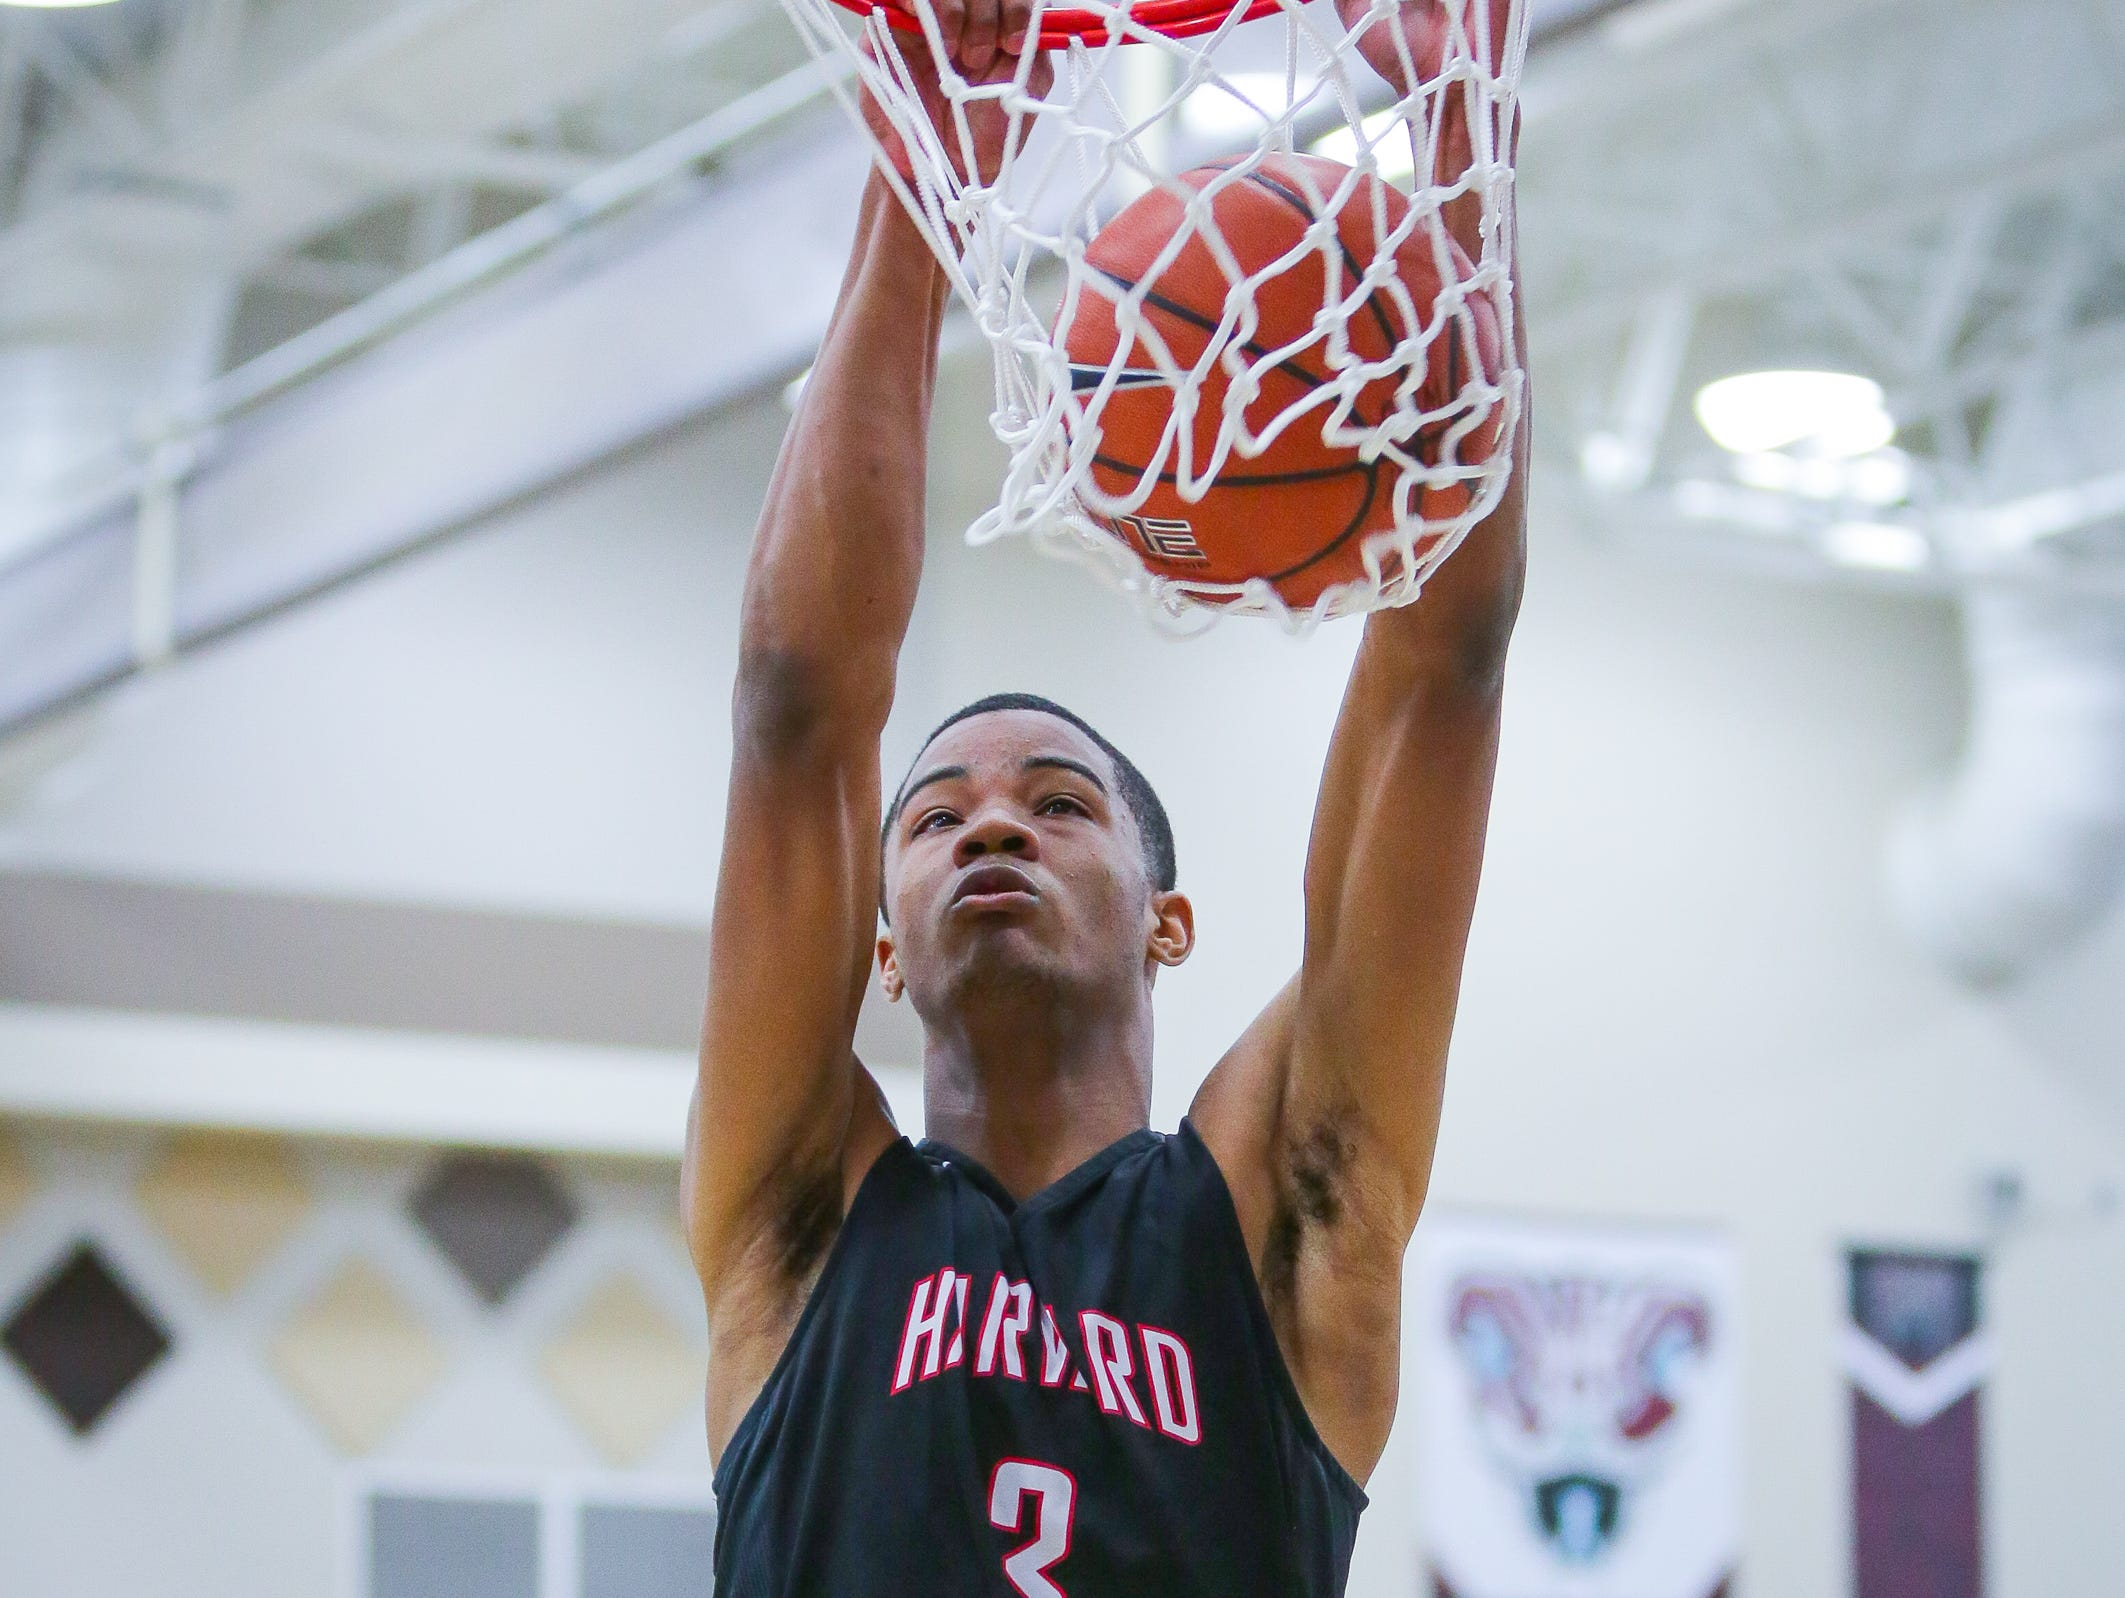 Cassius Stanley dunks another one durig the game between Harvard Westlake and La Quinta